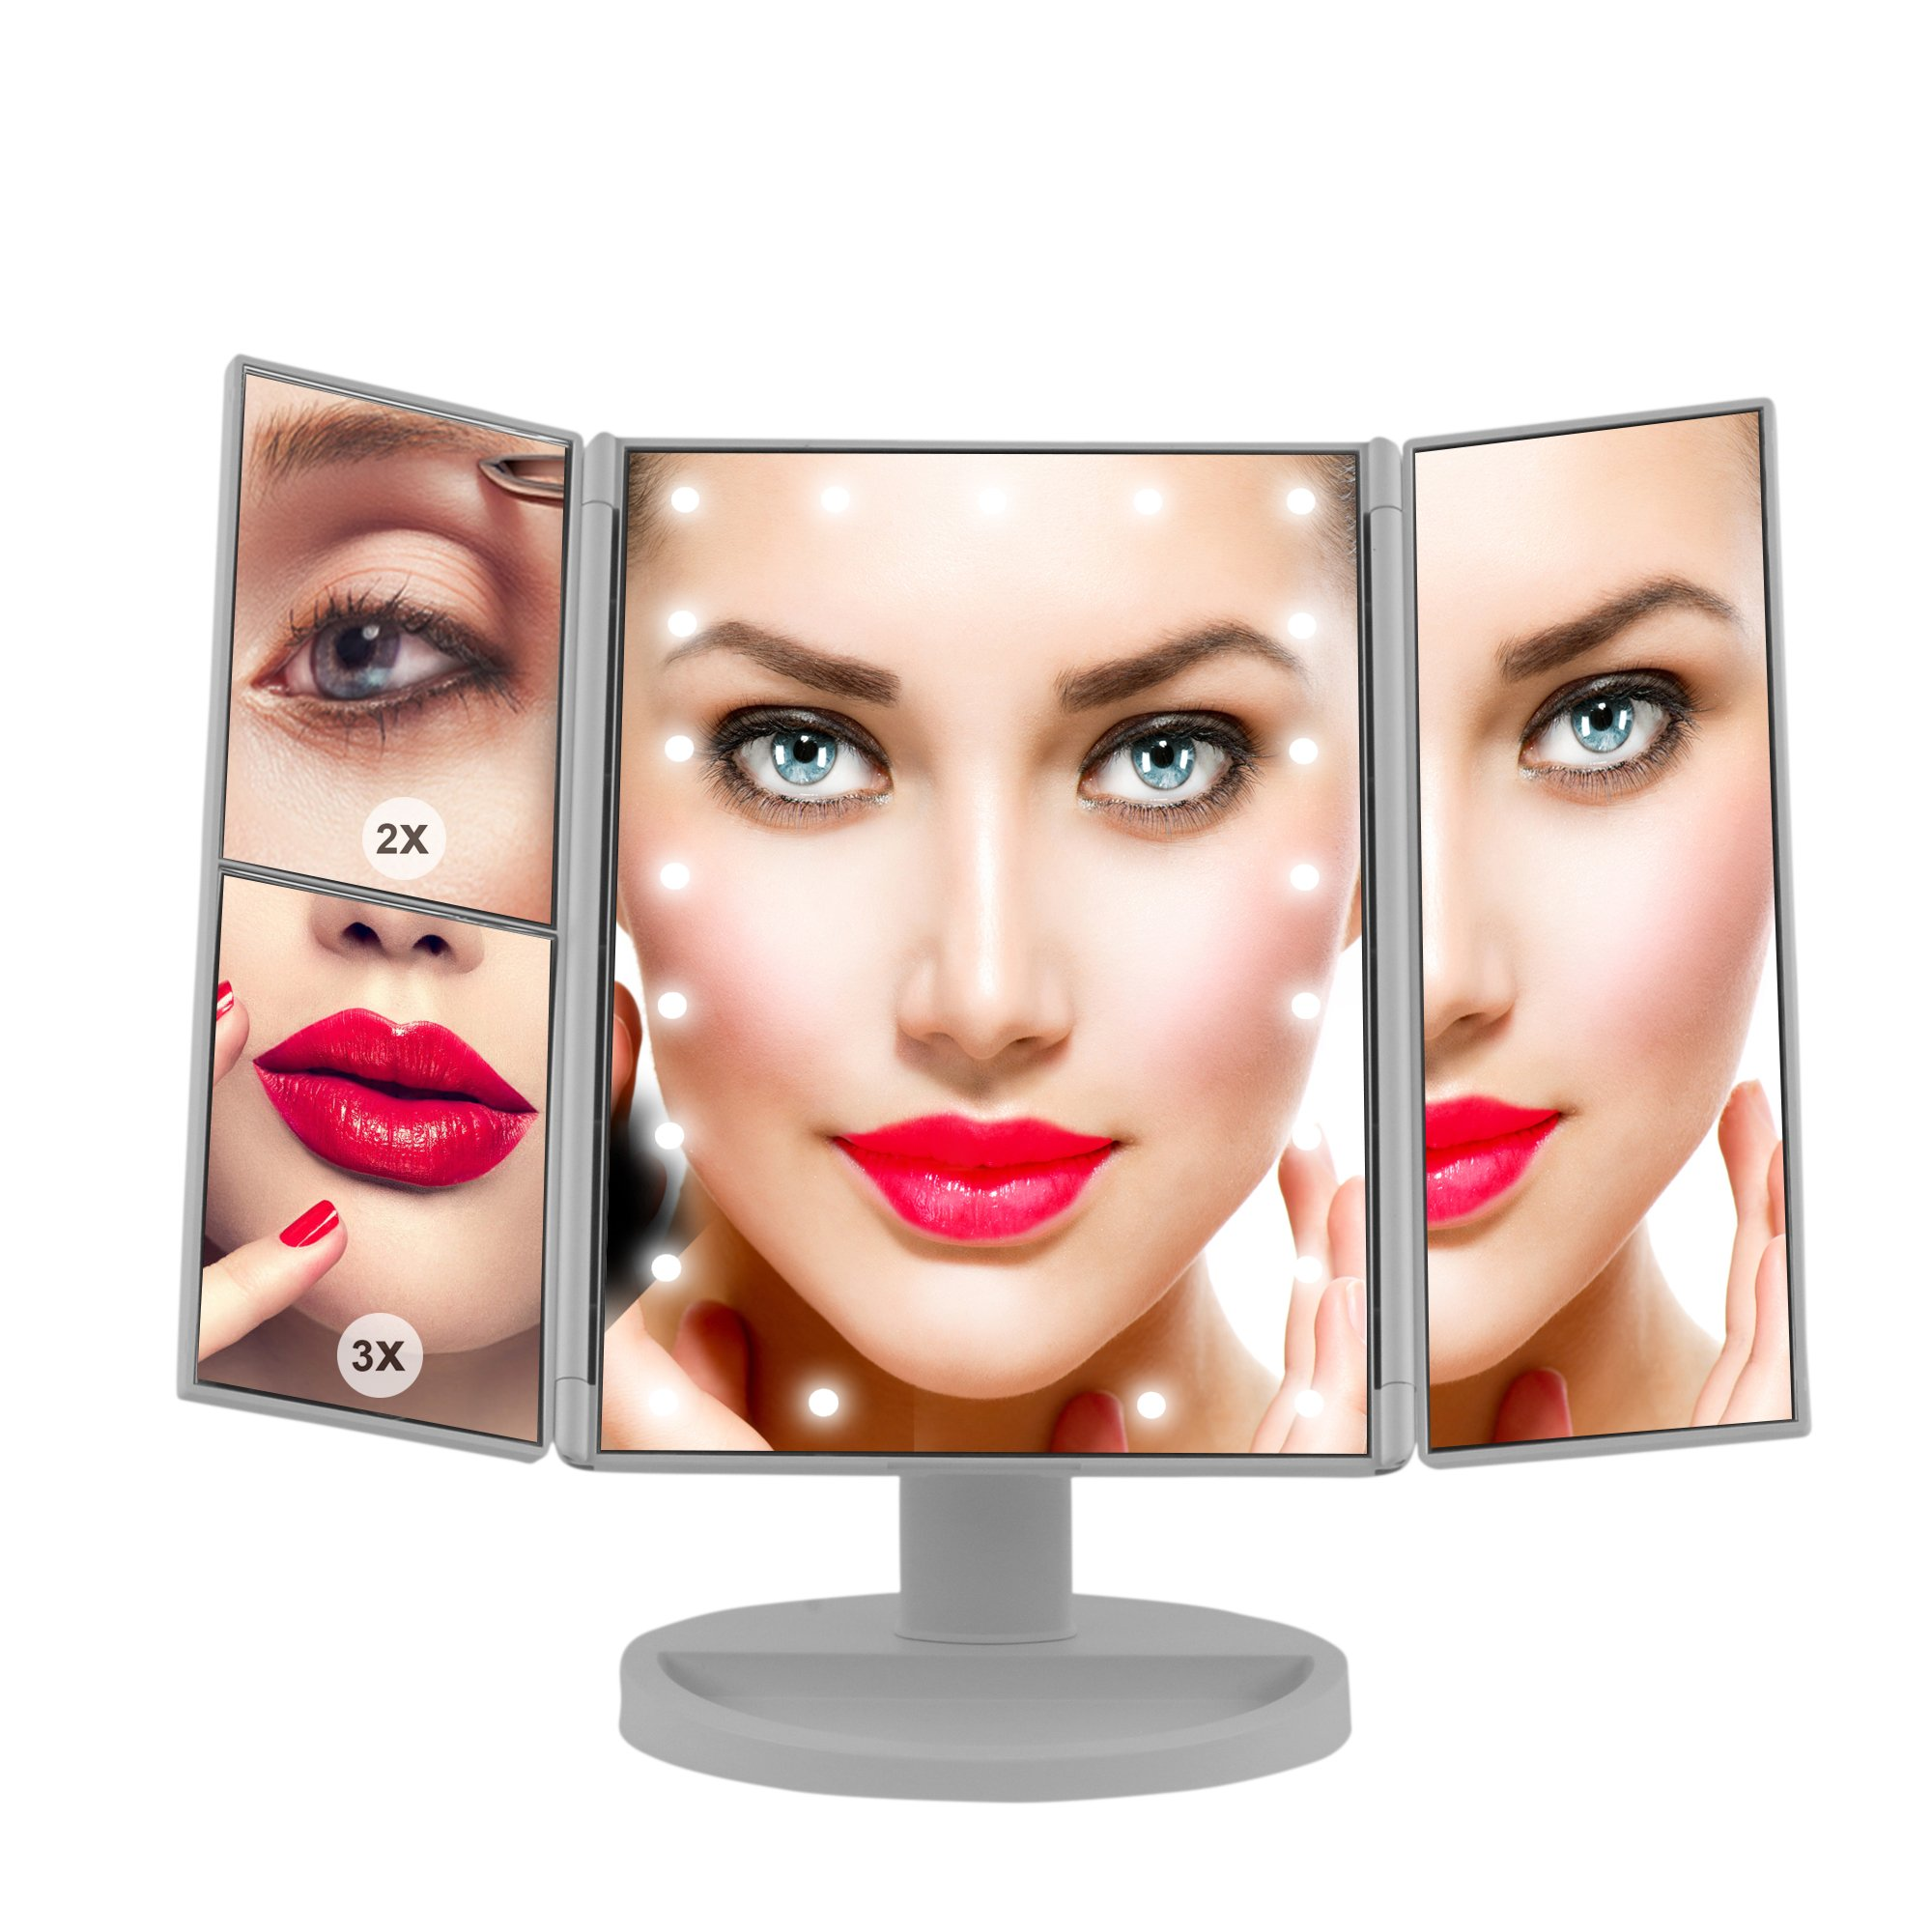 Makeup Mirror, LED Vanity Mirror with 21 LED Lights – 3X/2X Magnifying Tri-Fold Countertop Cosmetic Mirror for Bedroom, Bathroom. Portable Design, Touch Screen and 180° Adjustable Rotation